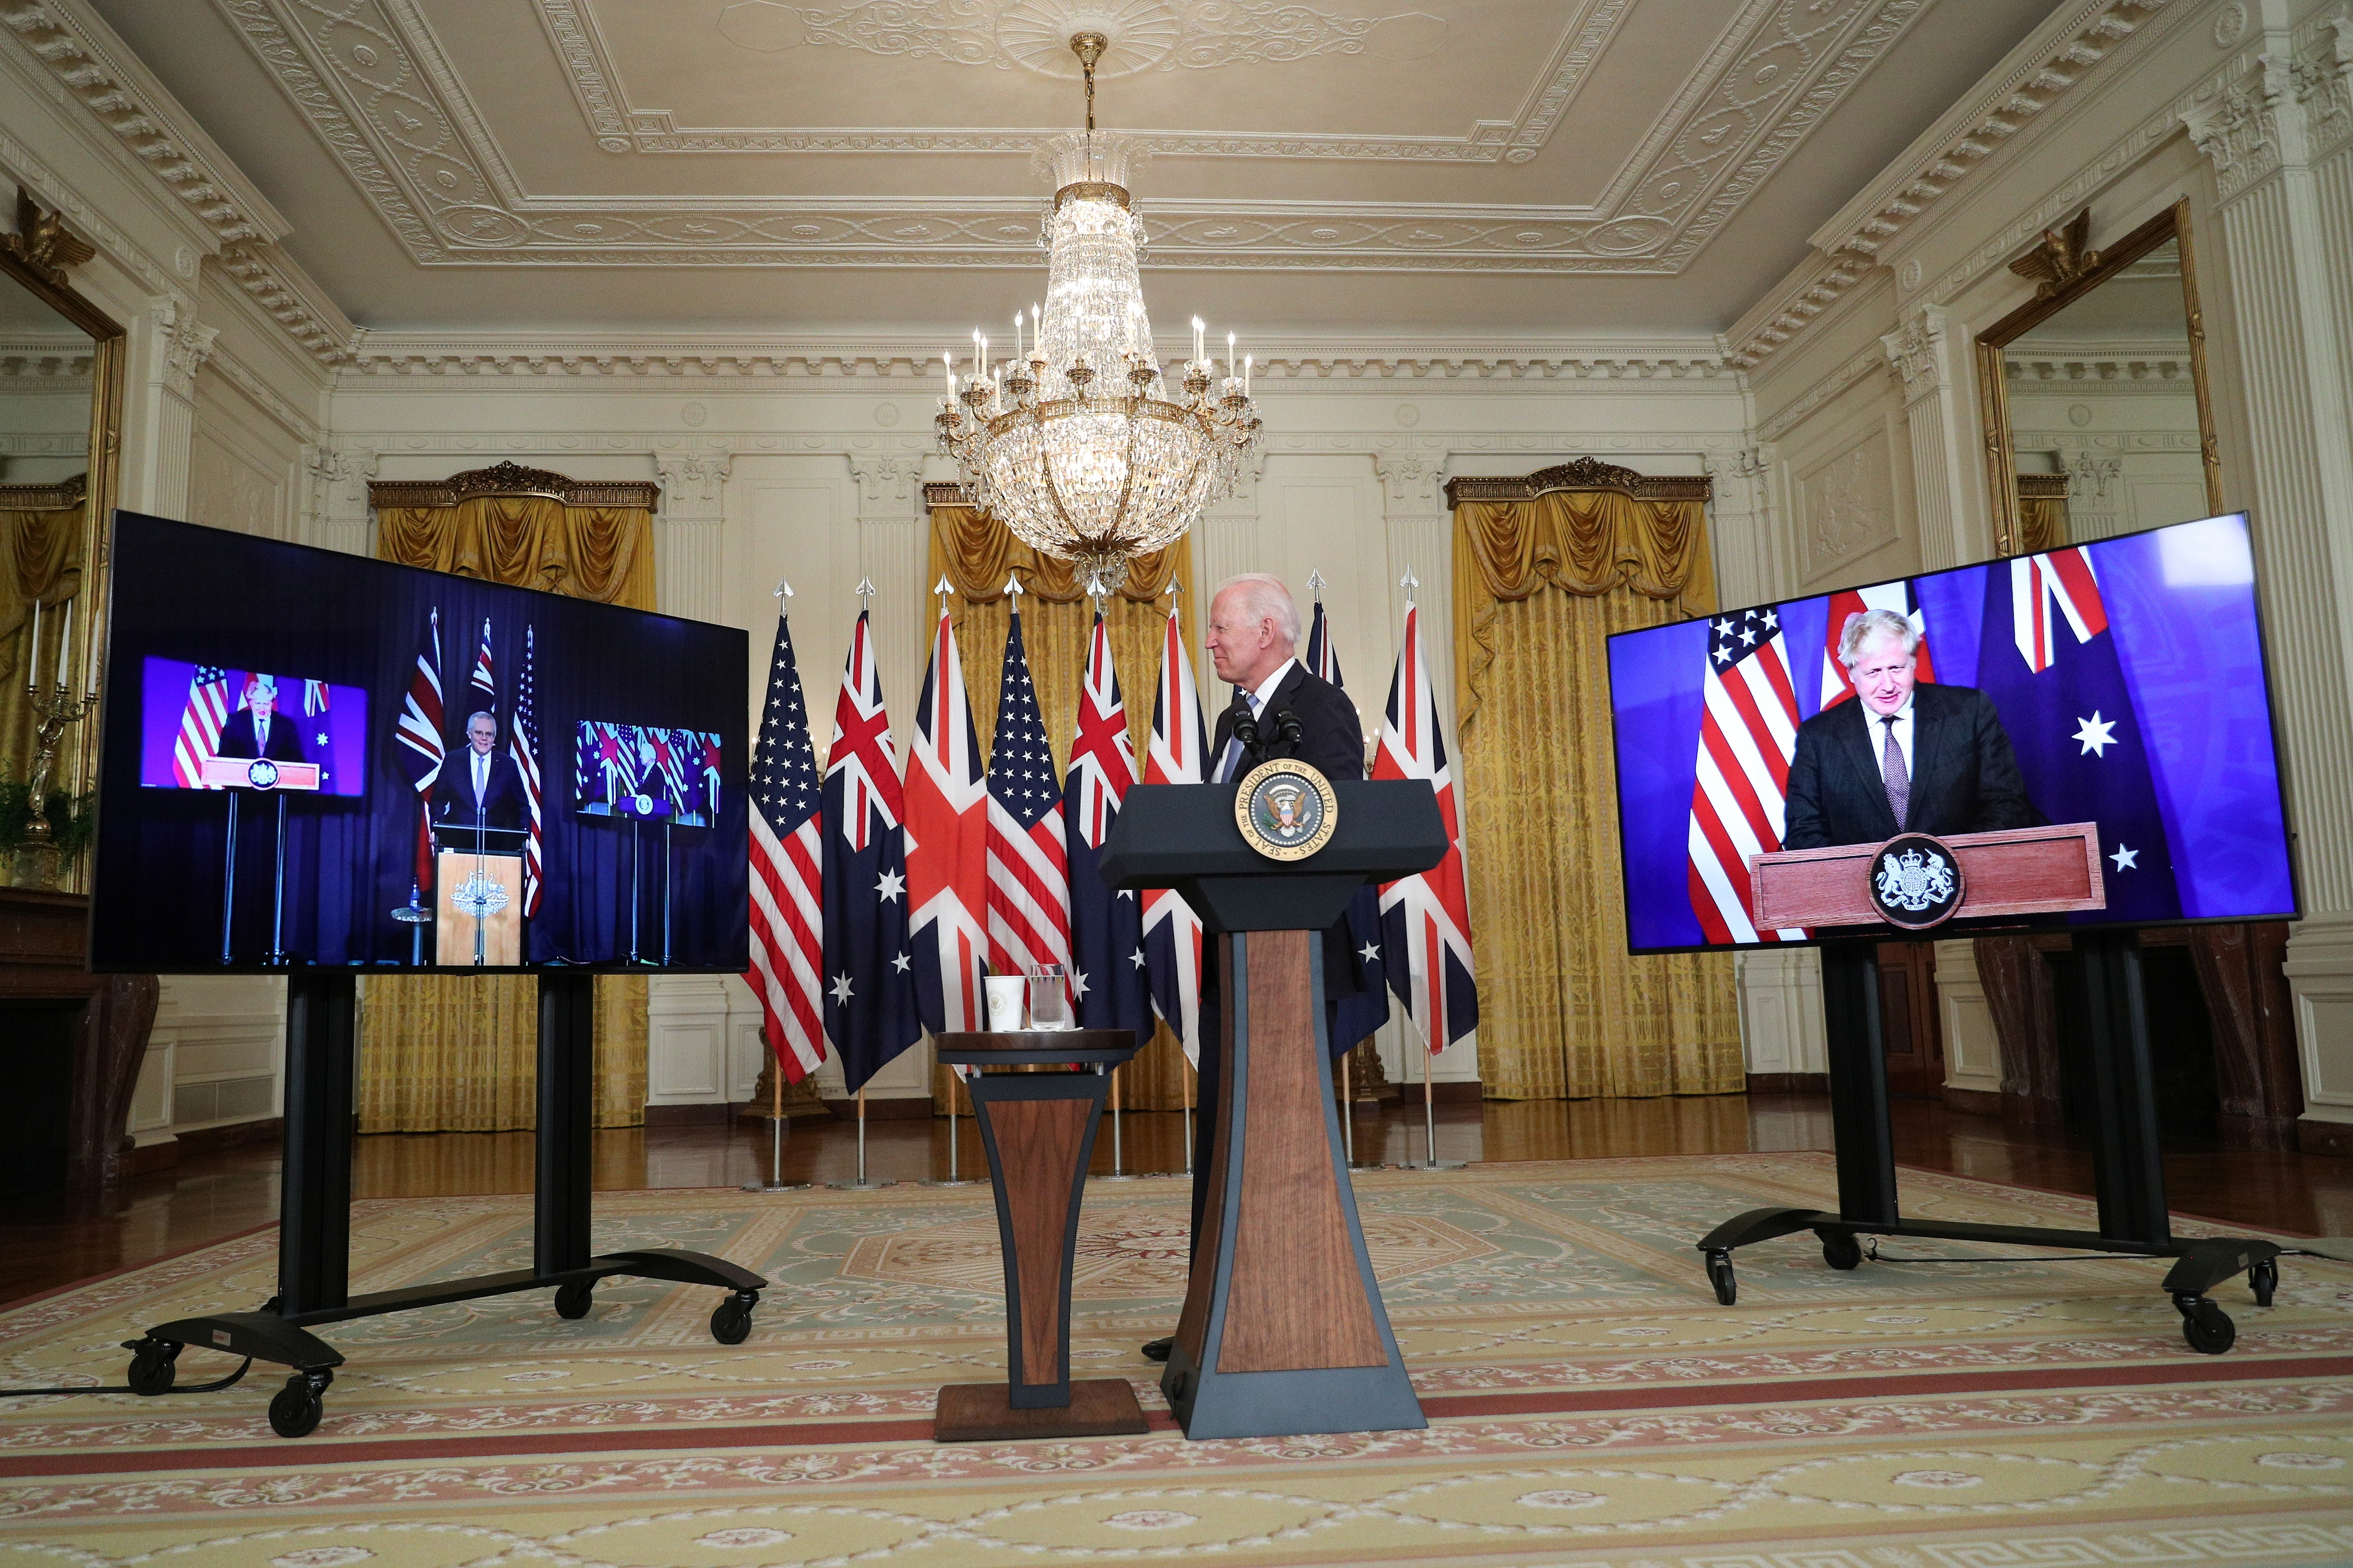 U.S. President Joe Biden delivers remarks on a National Security Initiative virtually with Australian Prime Minister Scott Morrison and British Prime Minister Boris Johnson, inside the East Room at the White House in Washington, U.S., September 15, 2021.  REUTERS/Tom Brenner